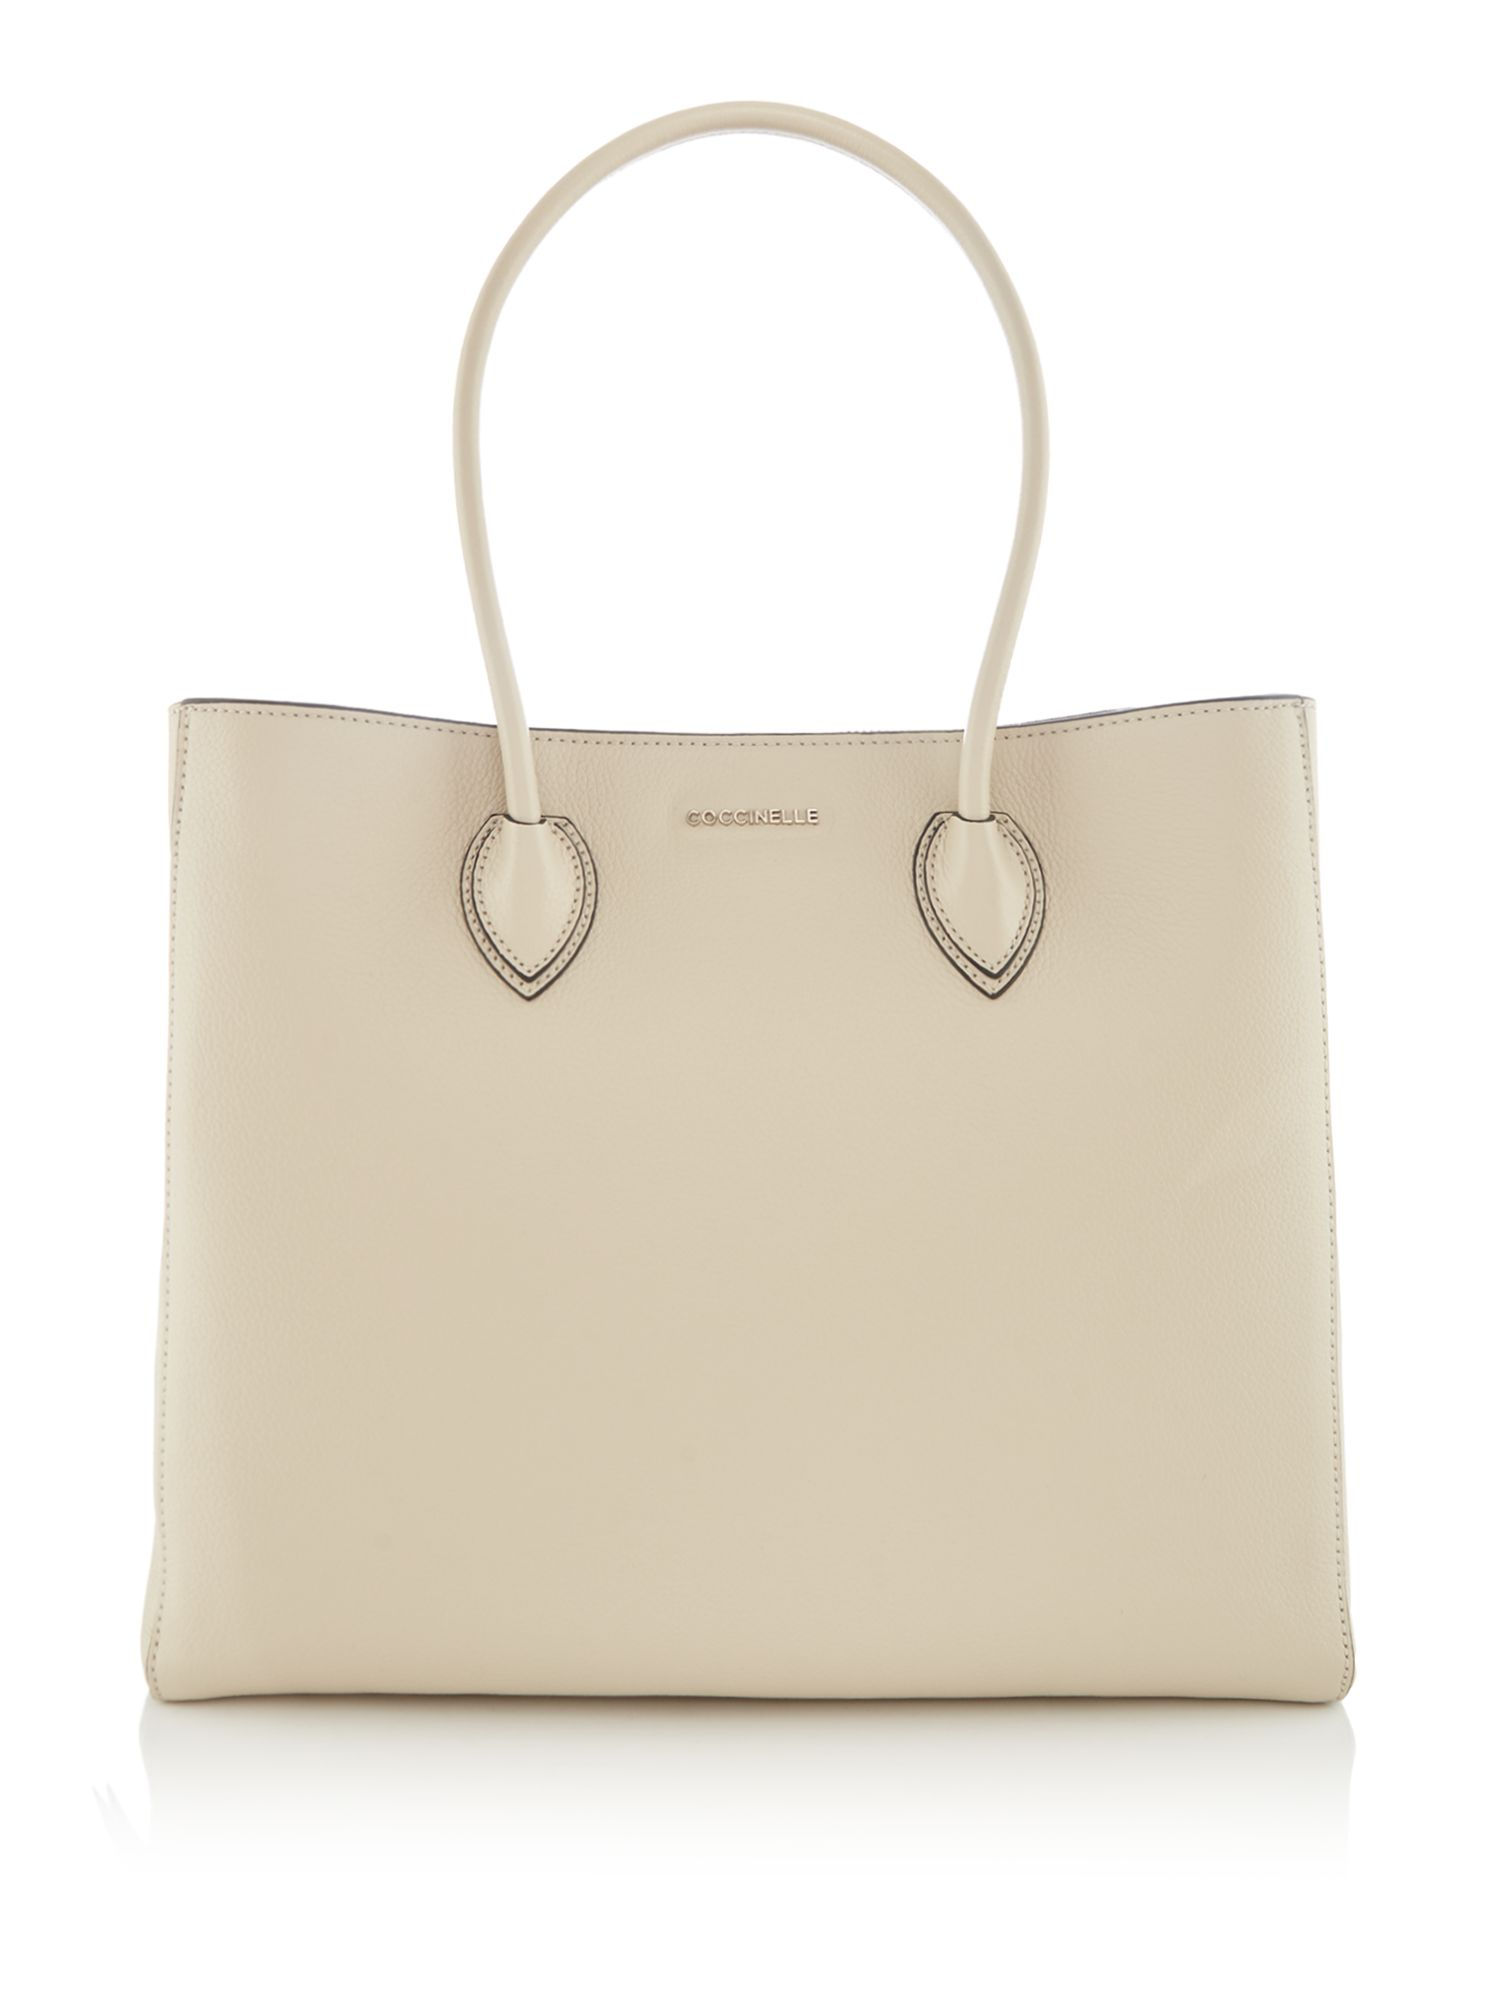 Coccinelle Farisa soft leather east west tote, Neutral